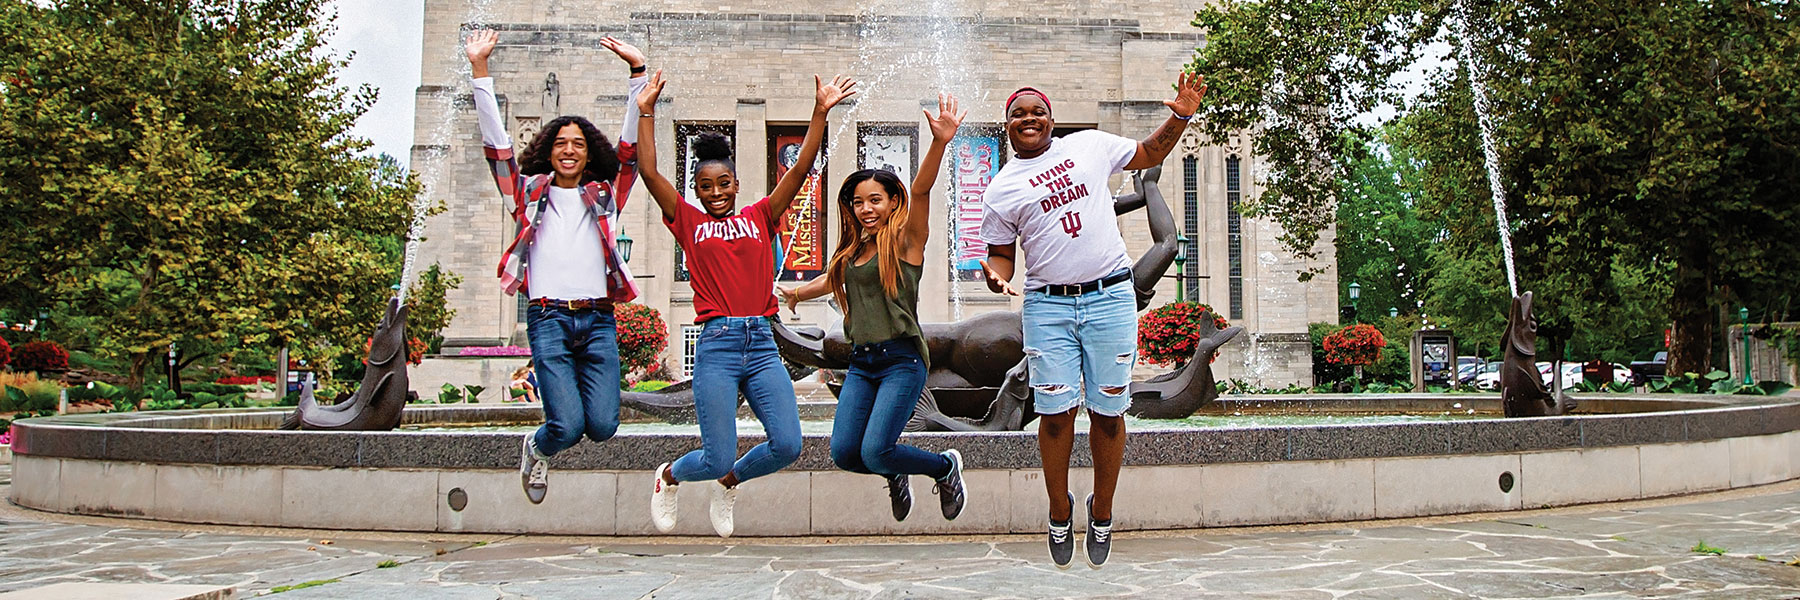 Students jumping by the fountain.